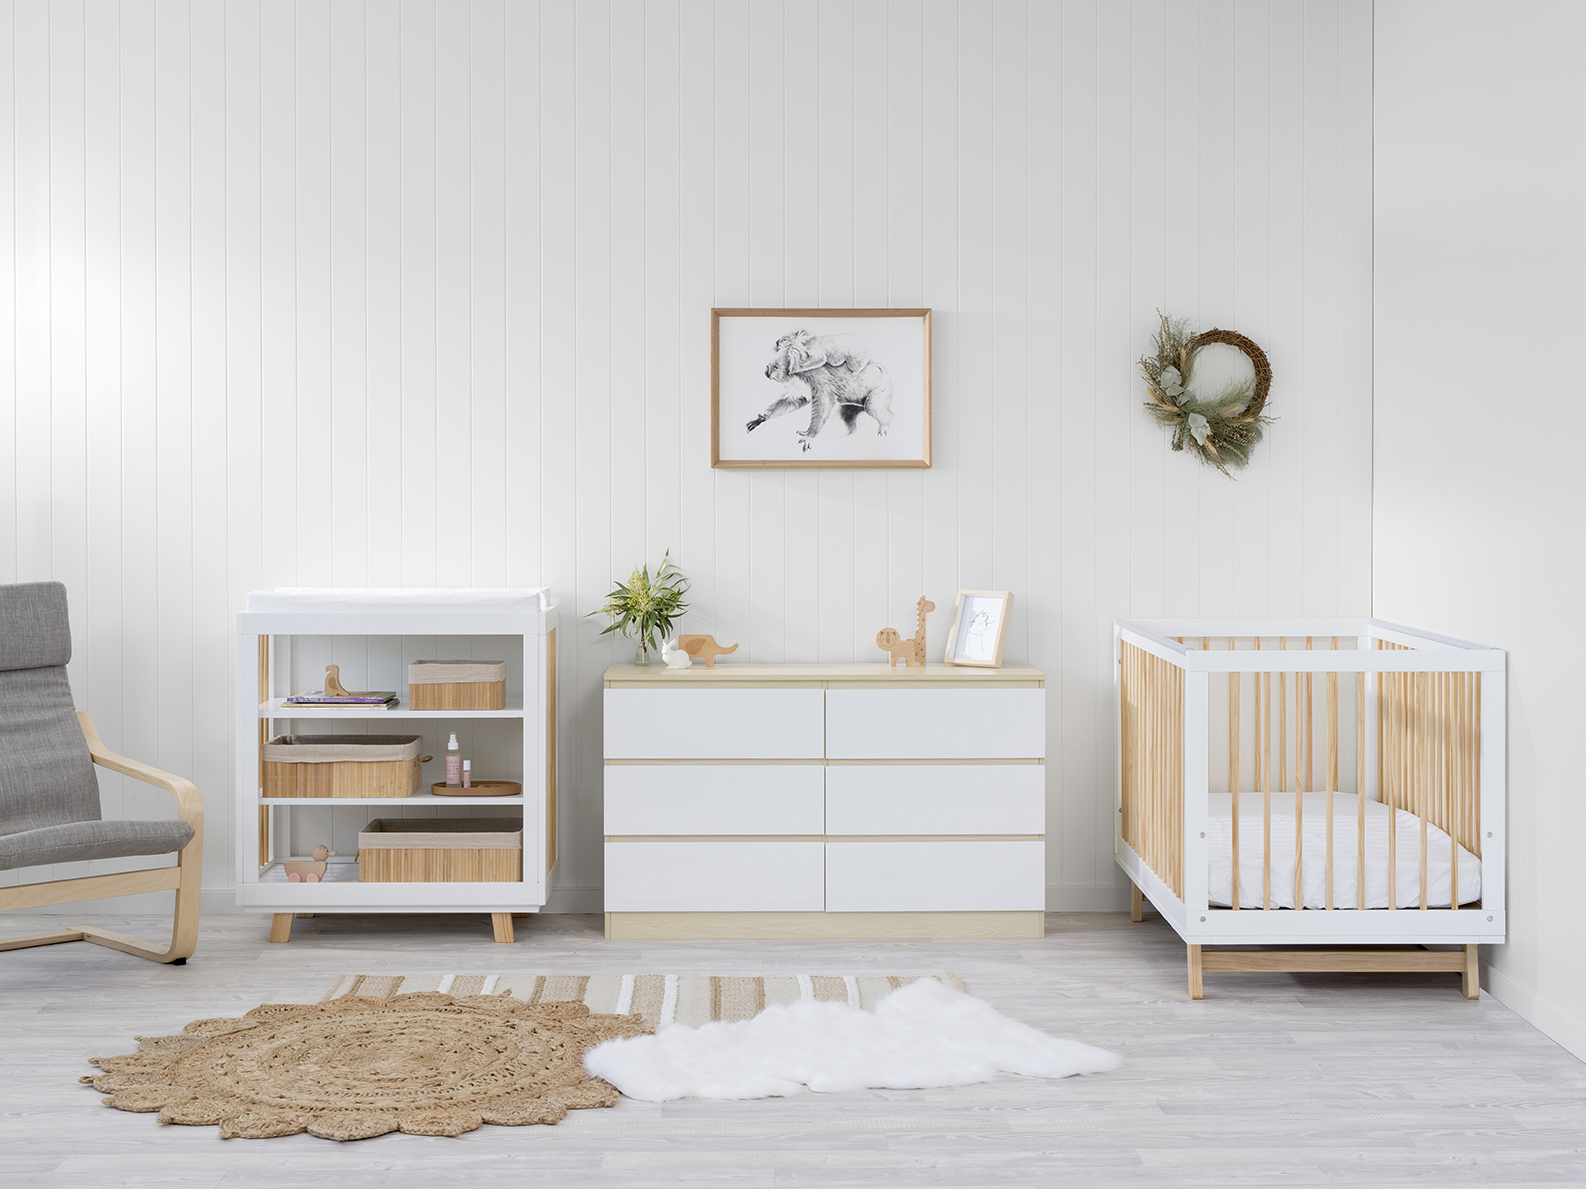 Aspen Upgrade Nursery Furniture Package